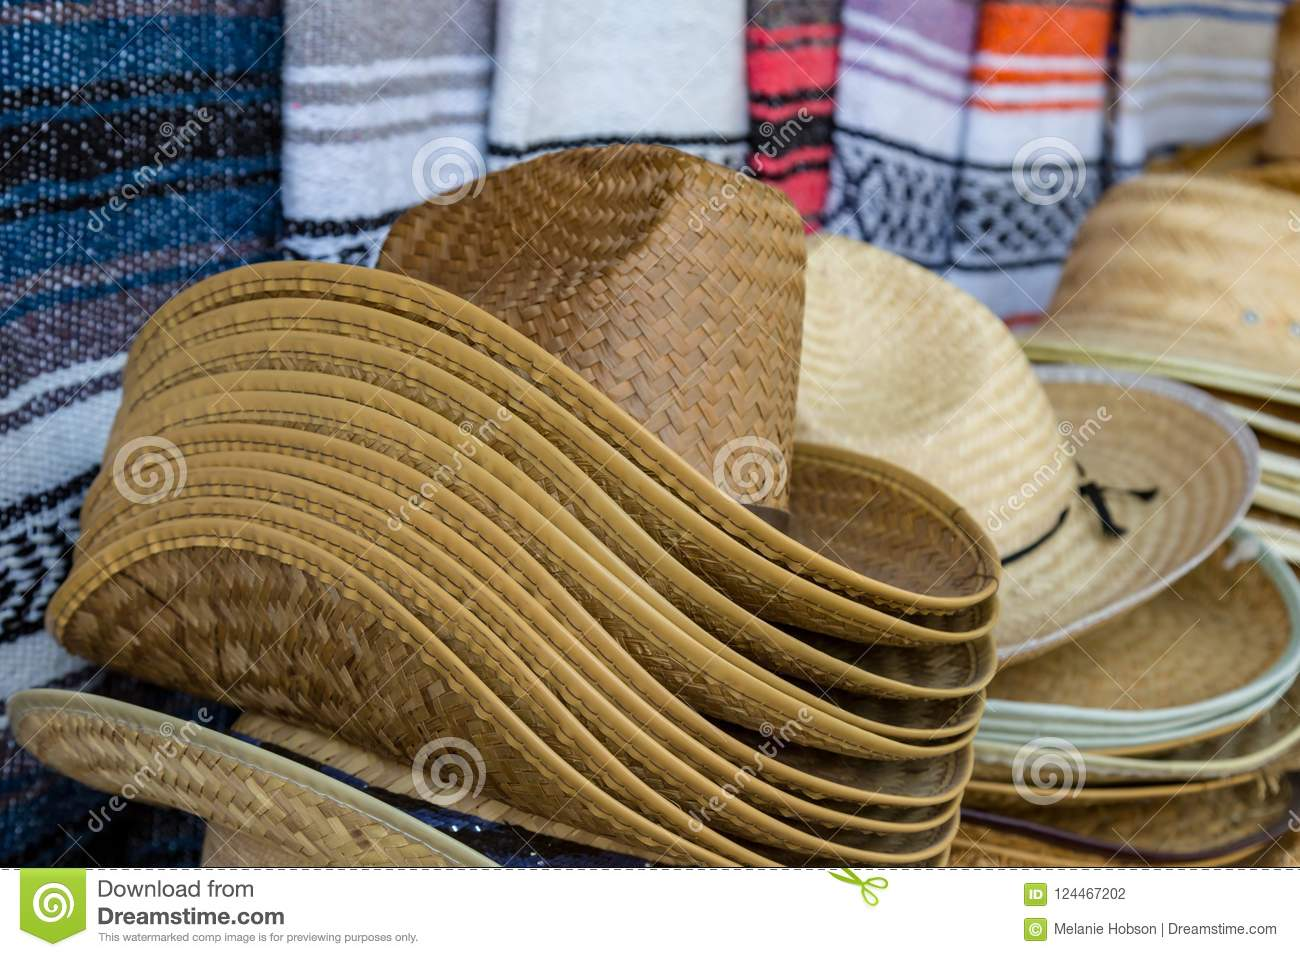 c49bd0b0e9f9d2 Cowboy hats stock photo. Image of rodeo, travel, horizontal - 124467202